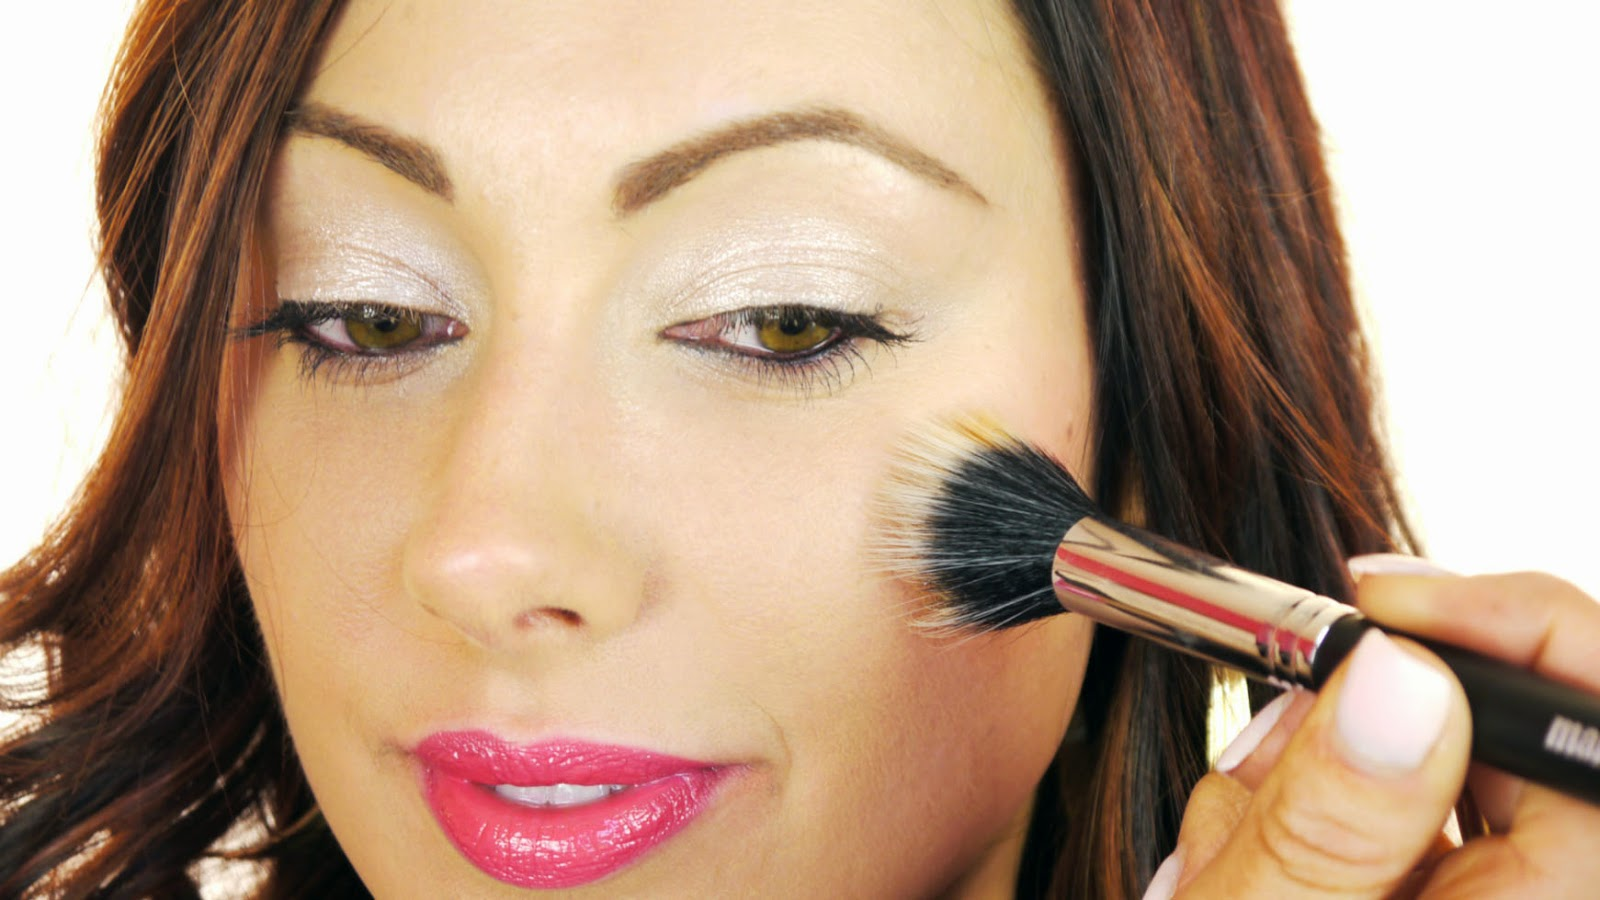 Pakistani Girls Makeup And Beauty Tips In Urdu Beauty & Fitness Tips For  Pakistanis How To